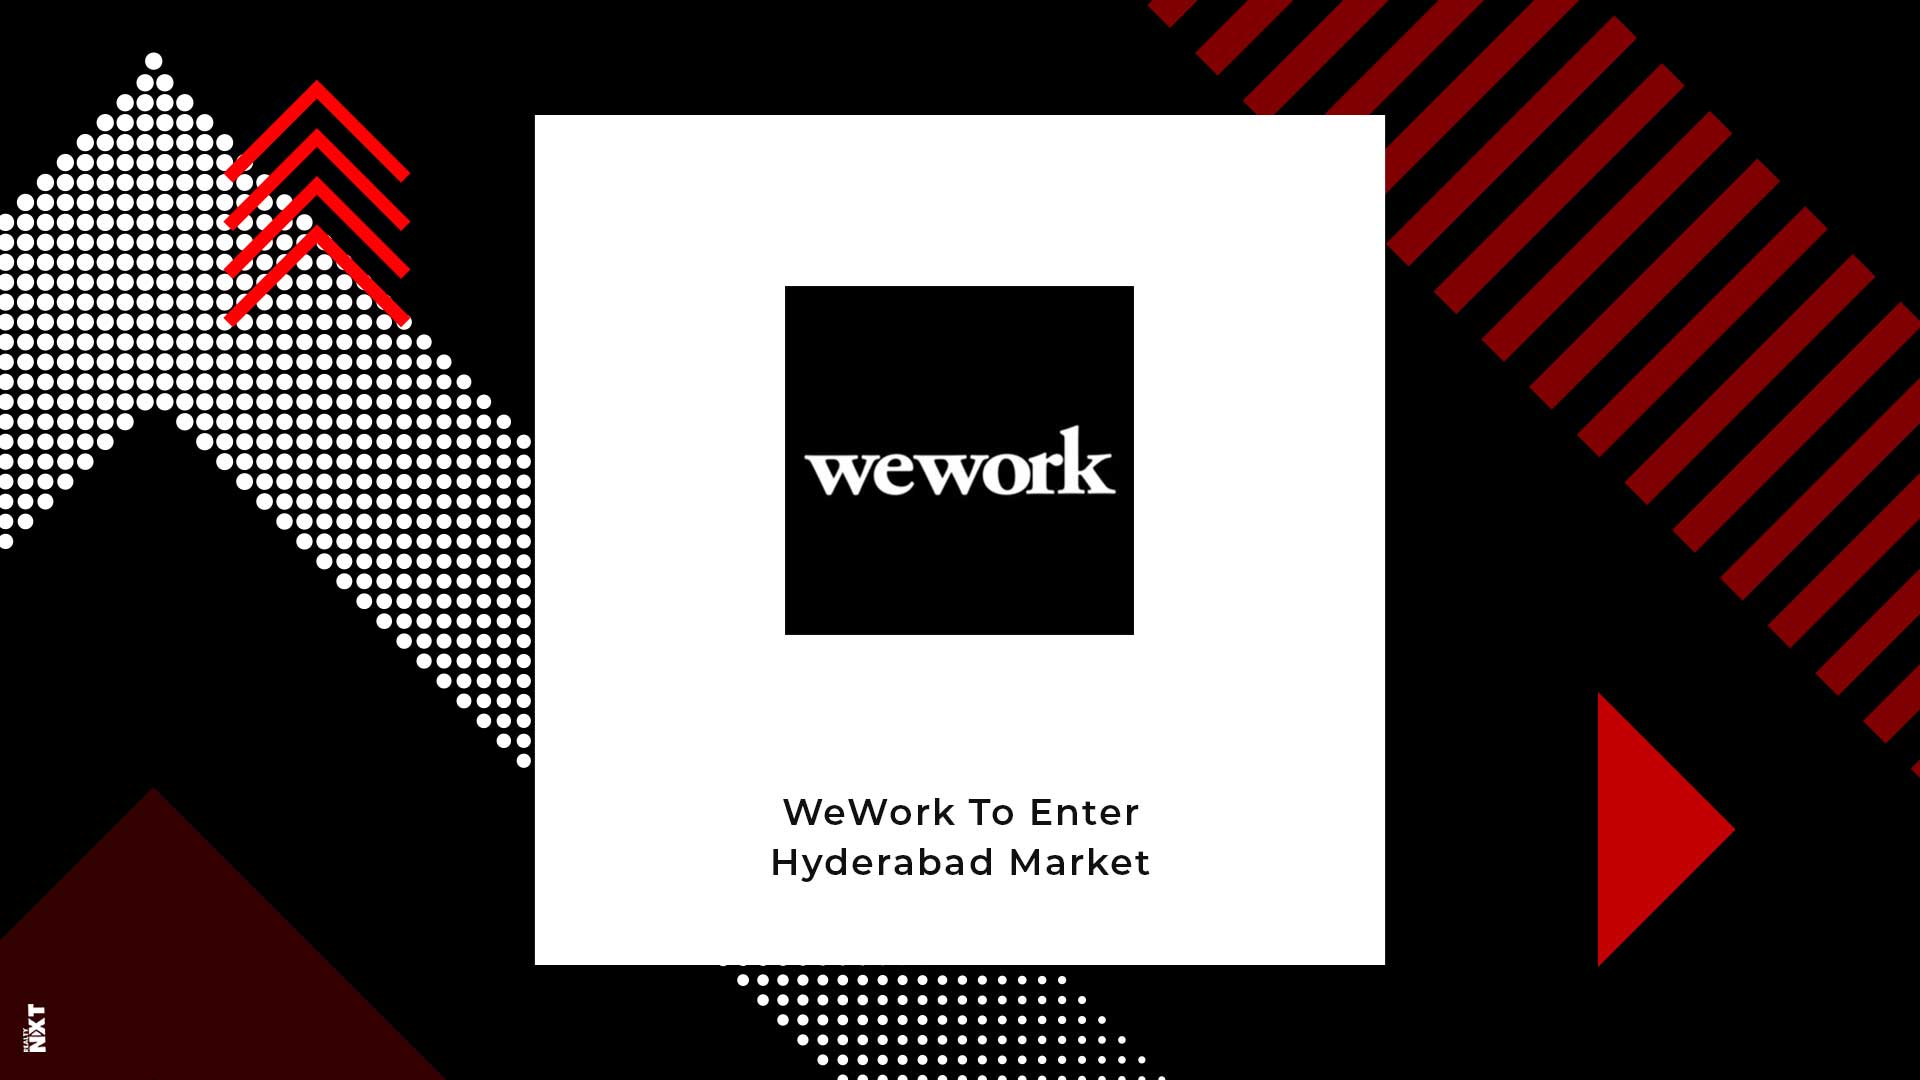 WeWork India To Rent 1 Million Sq. Ft. In Hyderabad